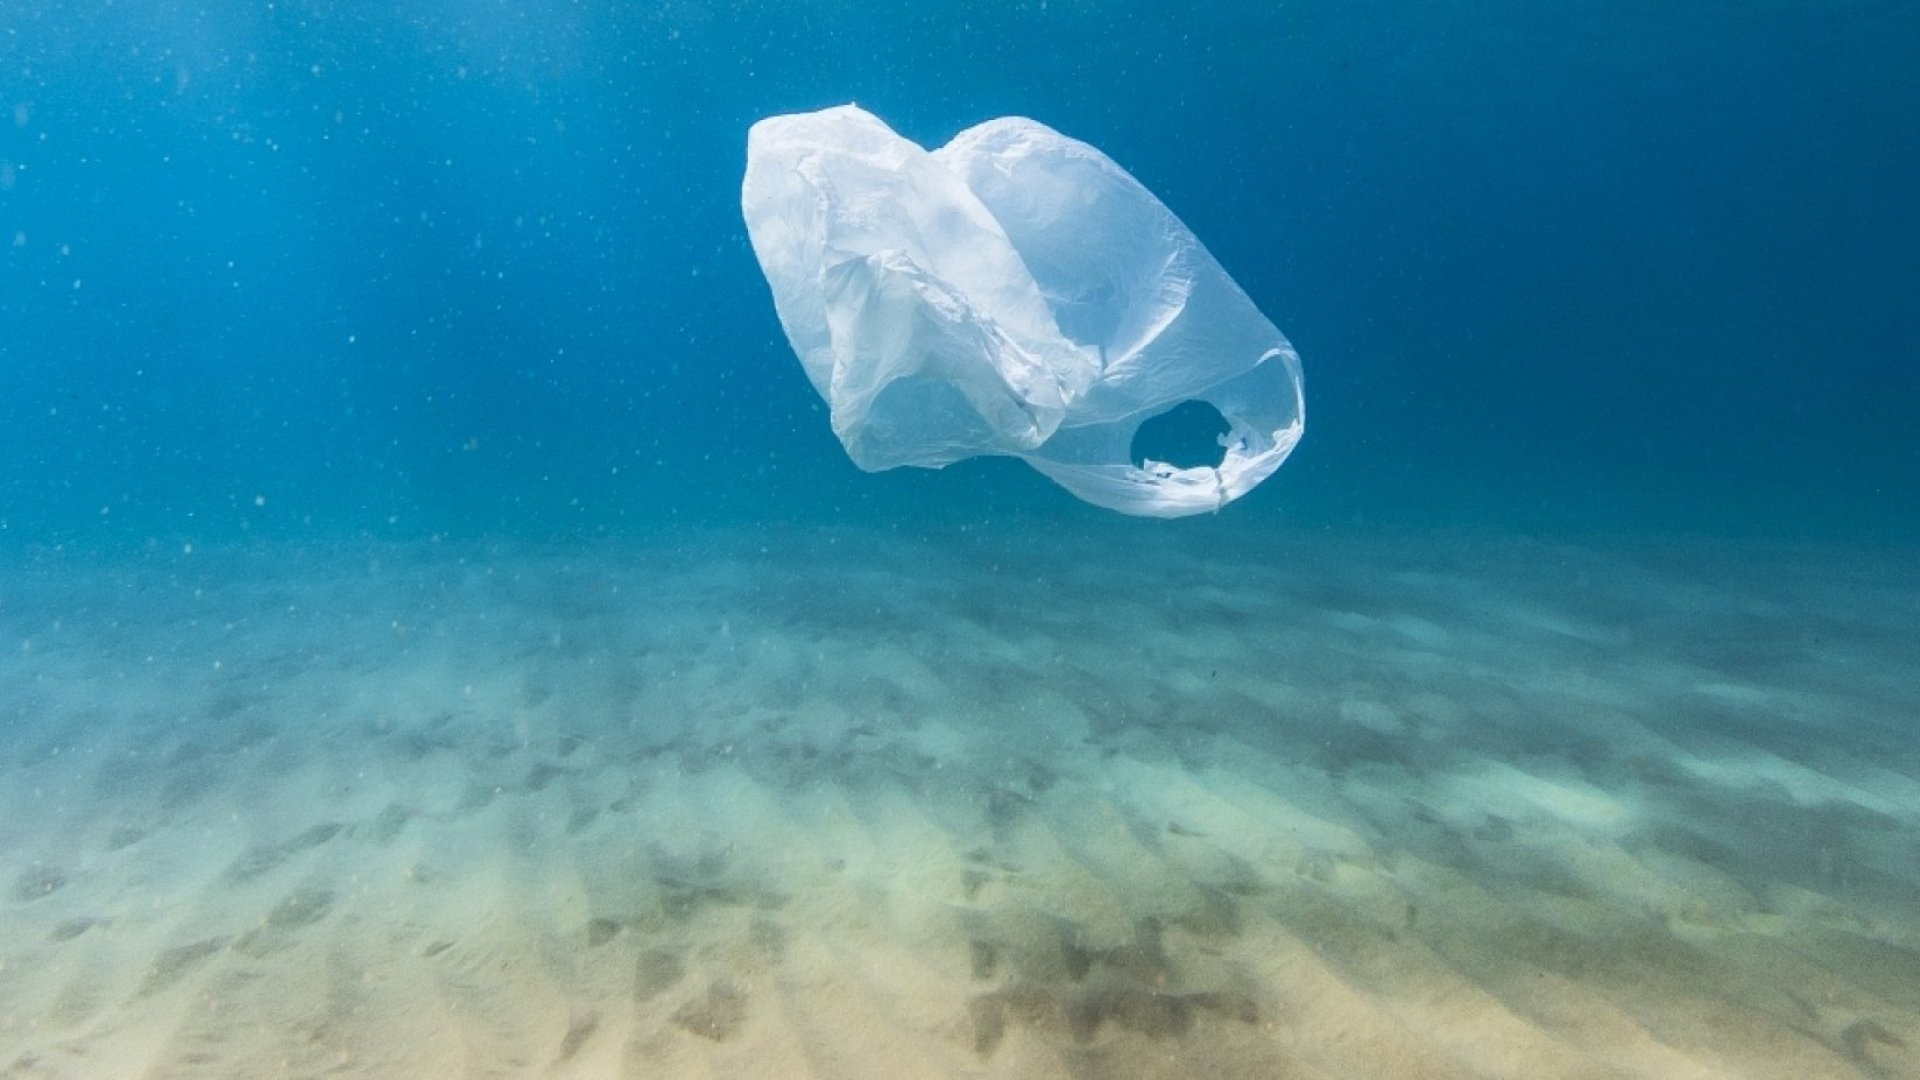 How Much Should a Plastic Bag Cost?